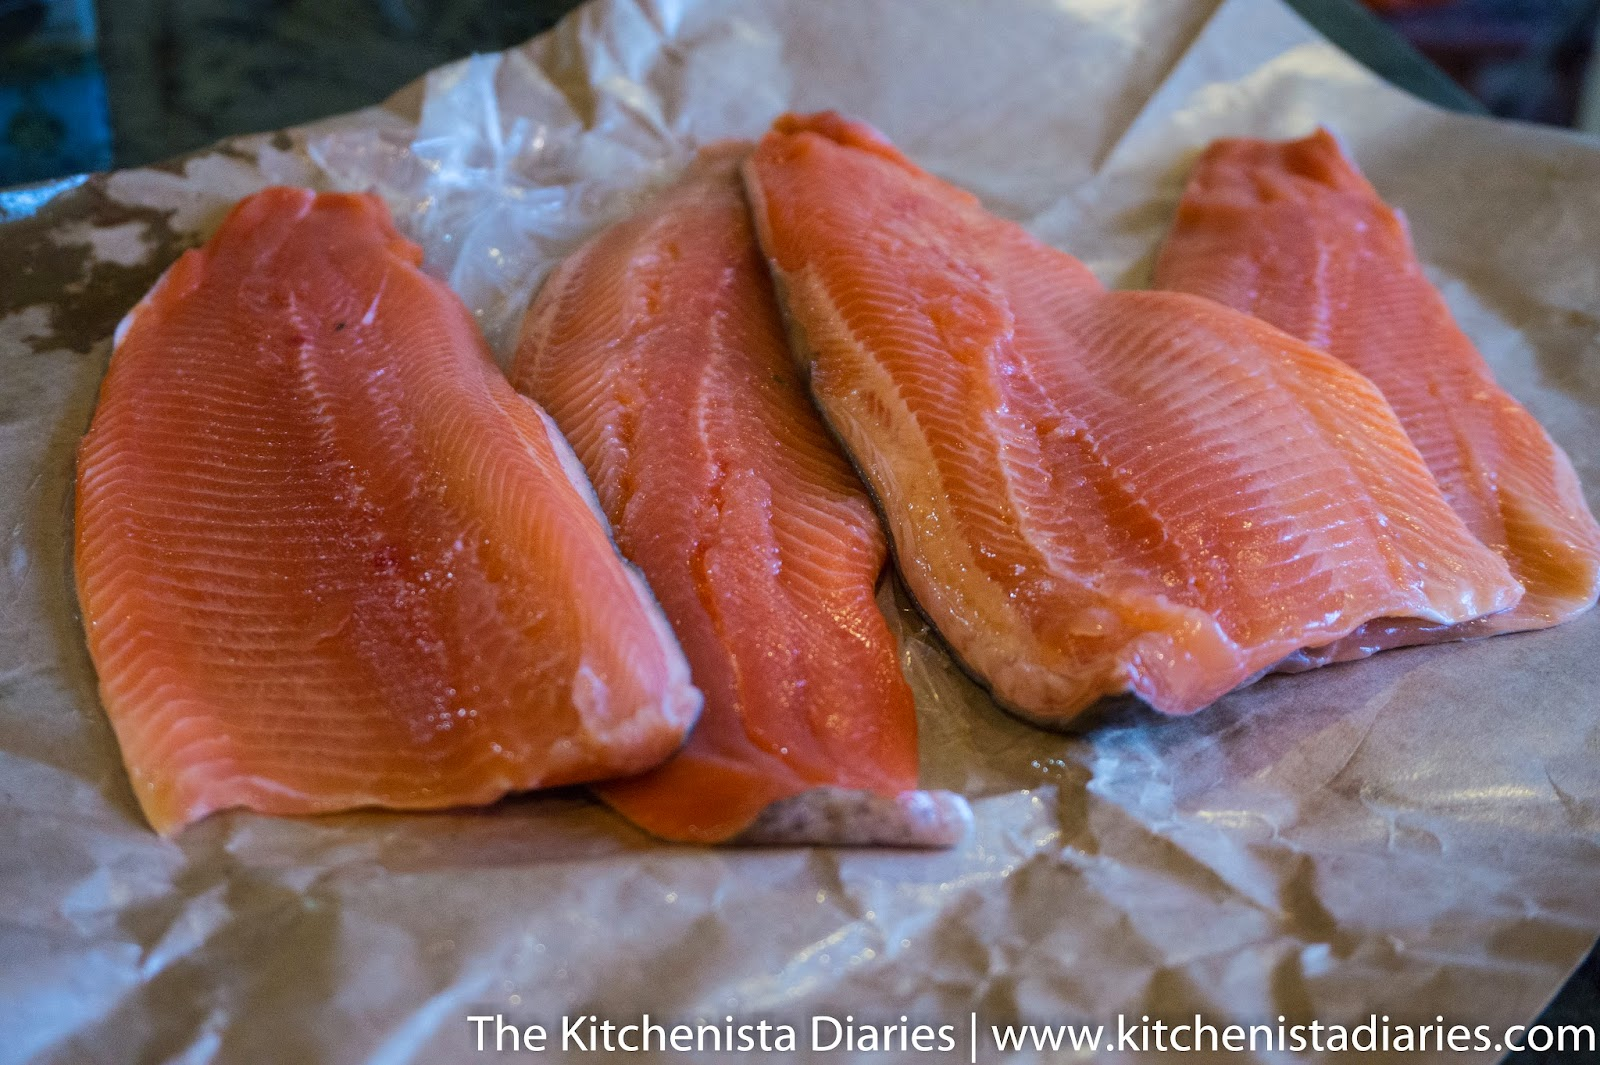 I'd Describe The Taste Of The Steelhead Trout As Clean And Slightly Sweet,  With A Texture That Was Moist And Flaky It Reminded Me Of Salmon But Was  Much